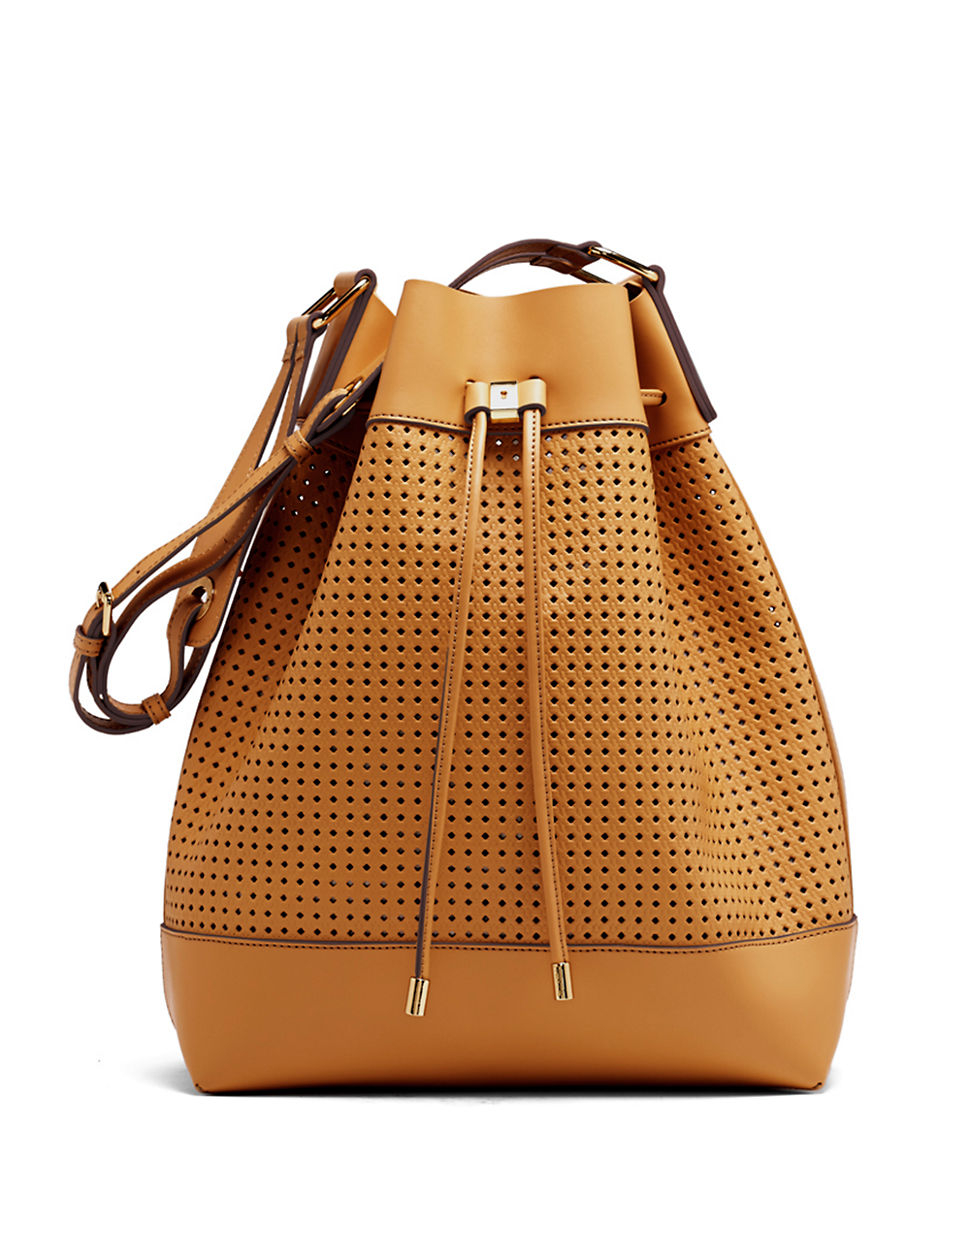 Vince camuto Colby Perforated Leather Drawstring Bag in Brown | Lyst